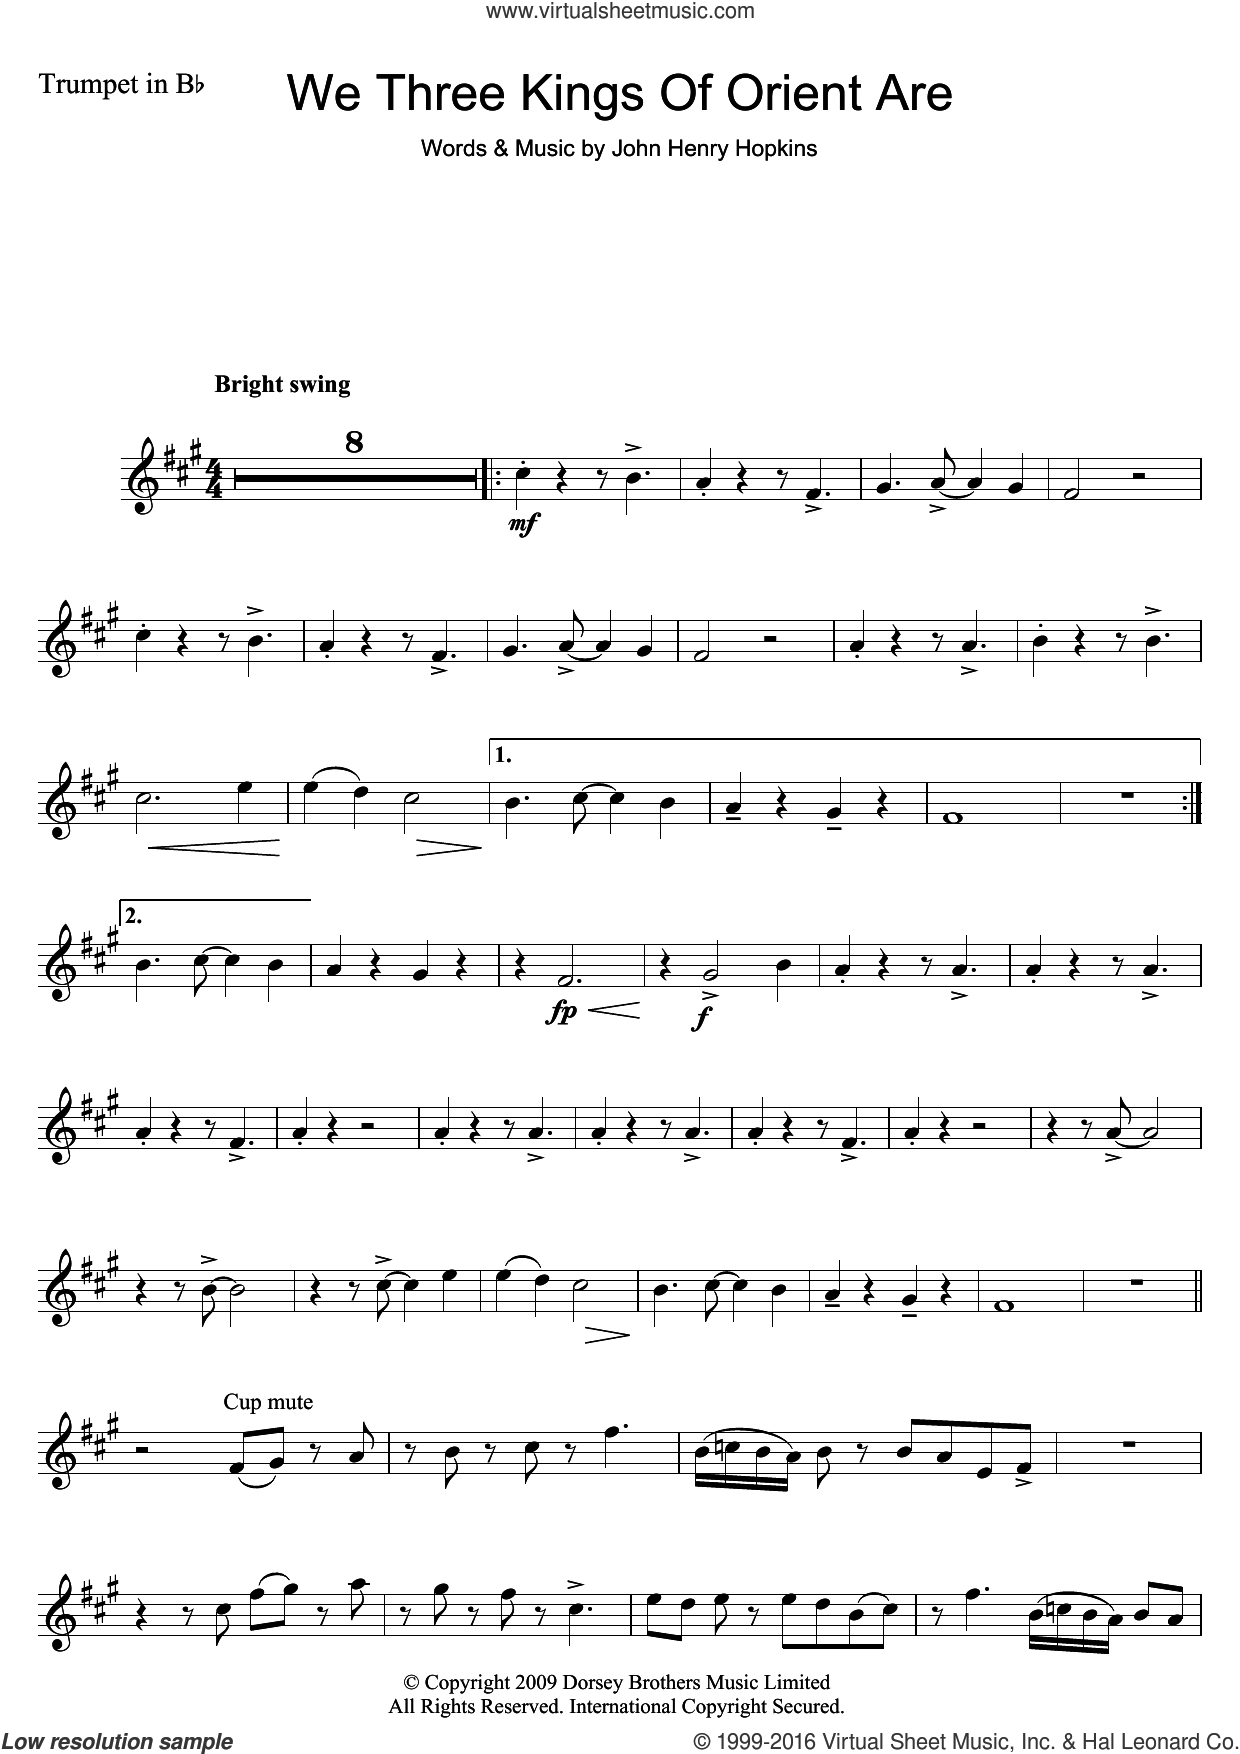 We Three Kings Of Orient Are sheet music for trumpet solo by John H. Hopkins, Jr. and Miscellaneous, intermediate skill level